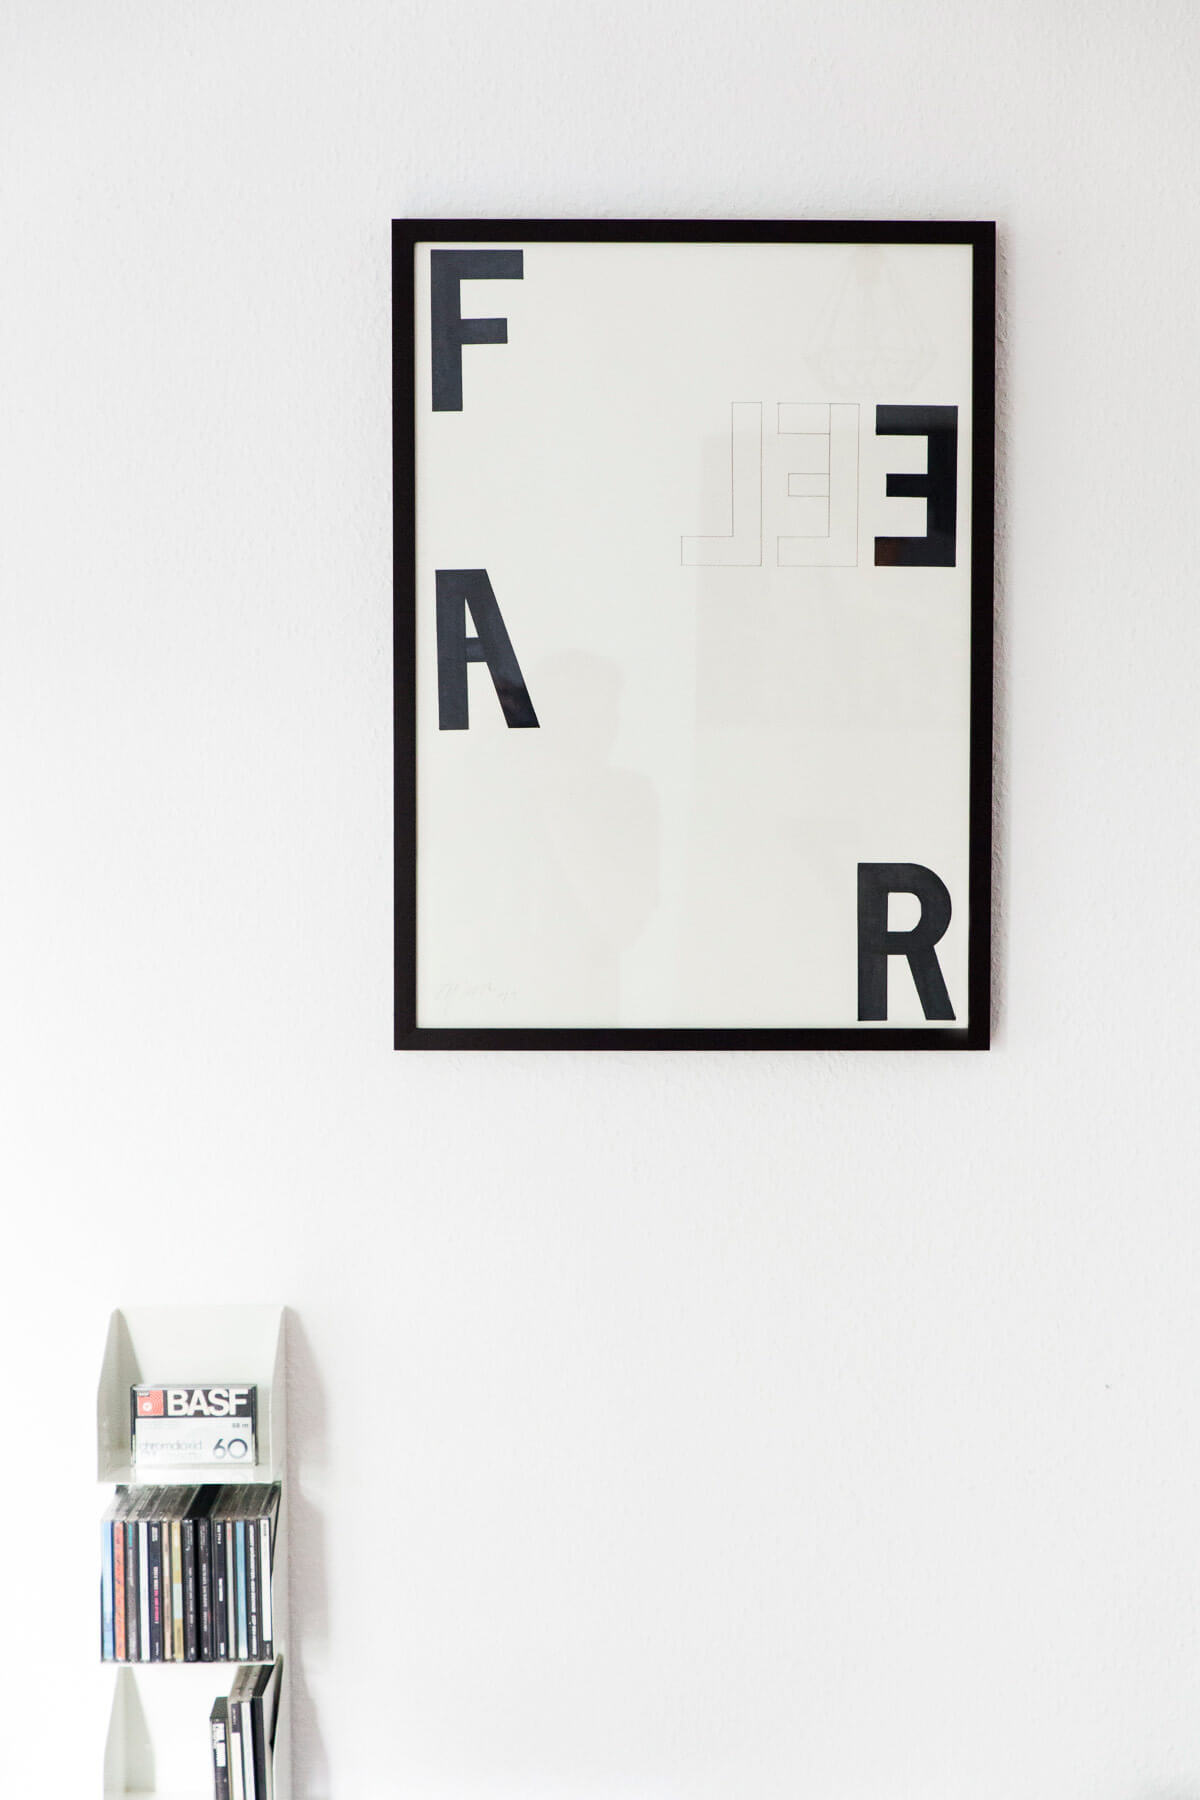 Daniel_Angermann_Fear_Far_Feel_2017_0_small Fear, Feel, Far